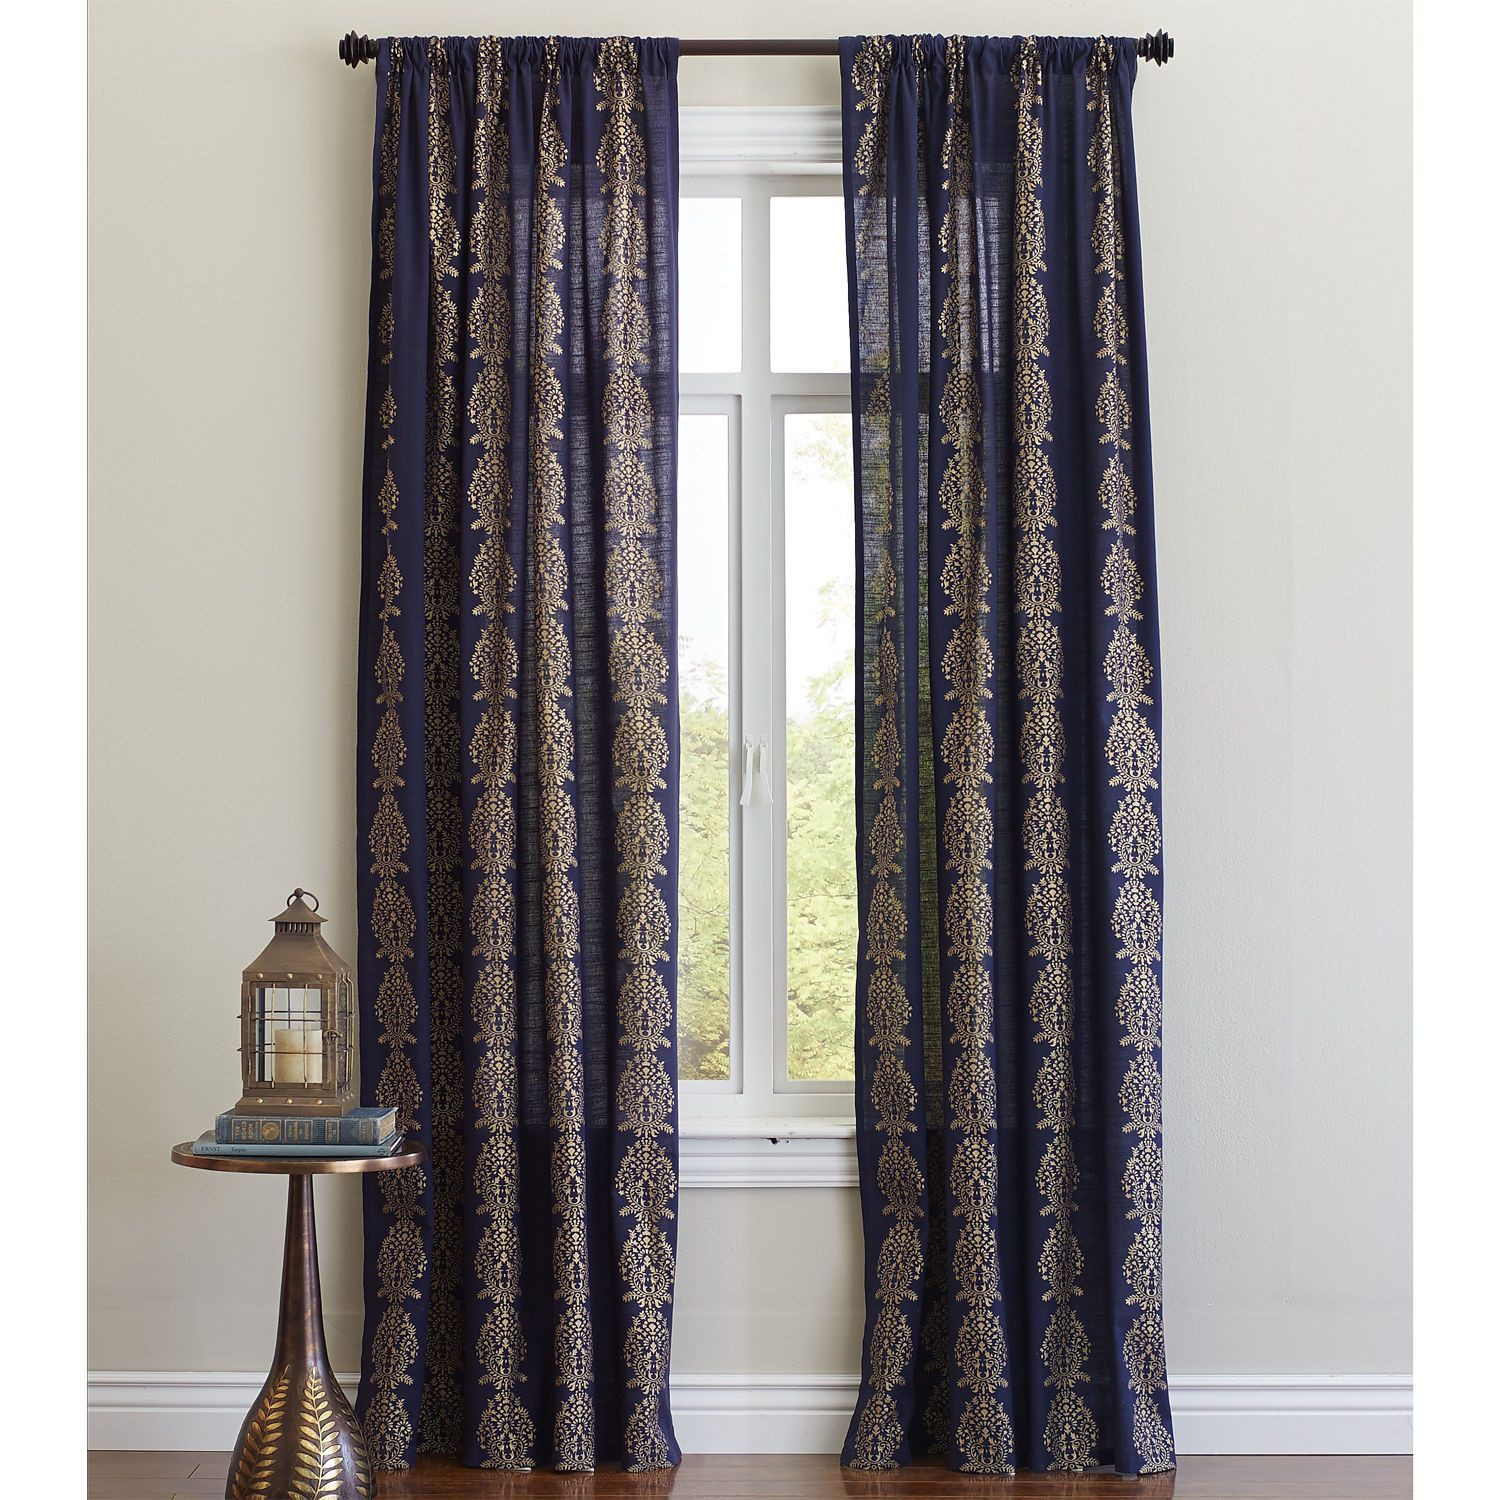 Pier 1 Imports Flower Vases Of 38 Luxury Pier One Curtains Panels Shower Curtains Ideas Design Throughout Damask Striped Curtain Indigo